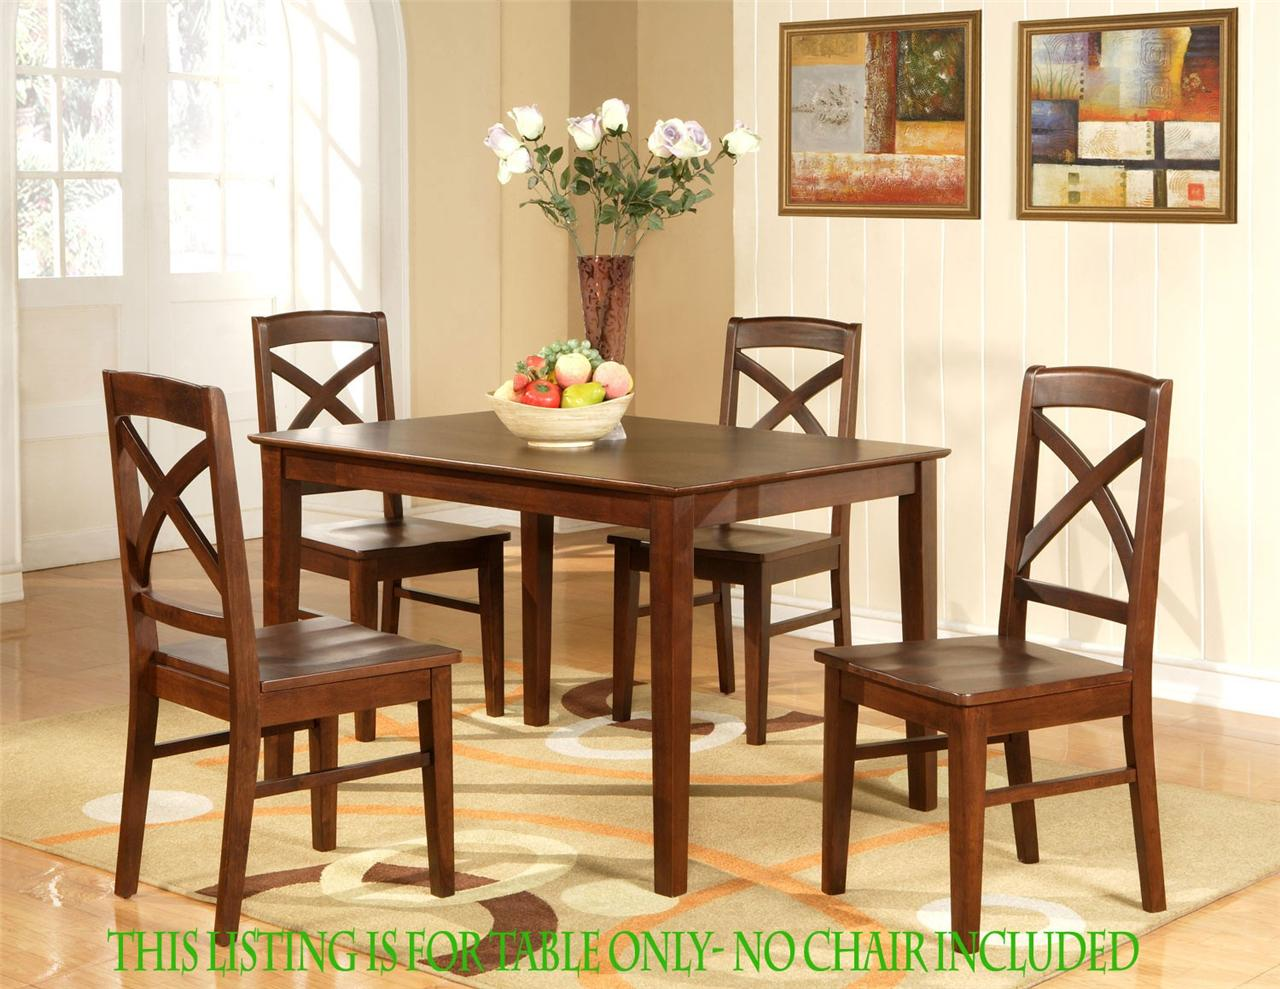 Rectangle Kitchen Table And Chairs Rectangular Dining Room Kitchen Table 36 Quotx48 Quot In Espresso